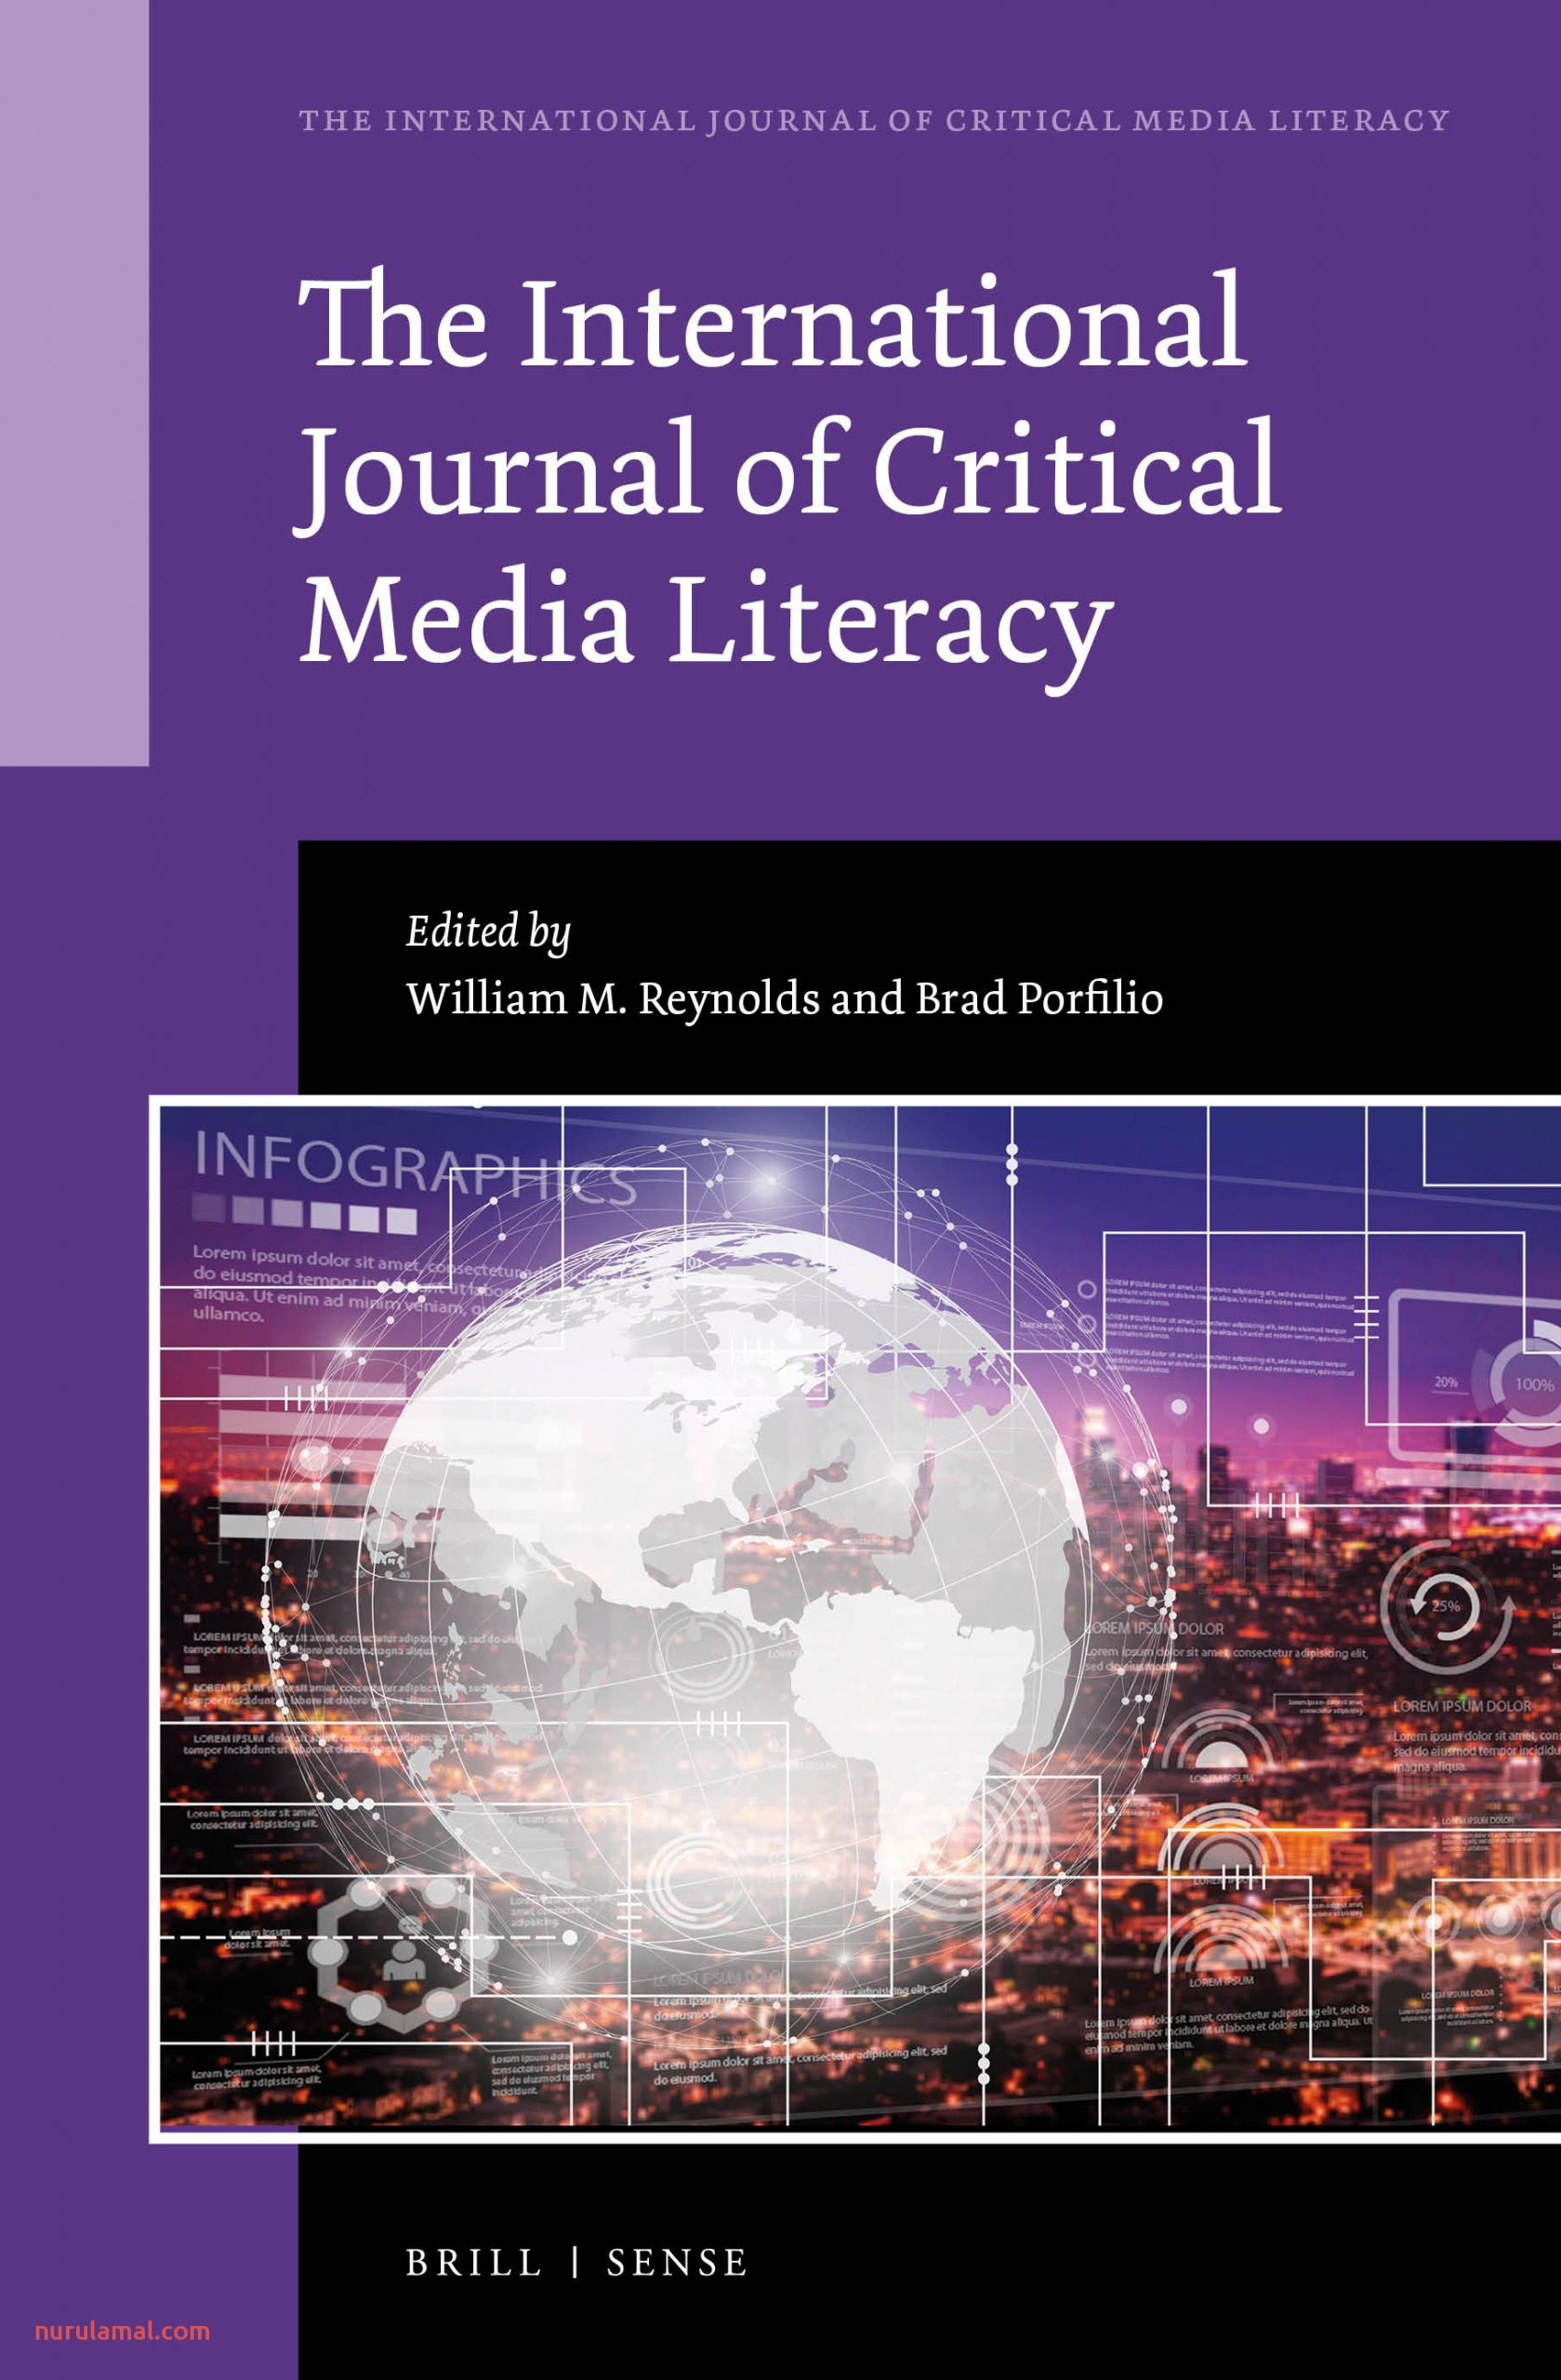 The Interconnection Between Critical Media and social Media